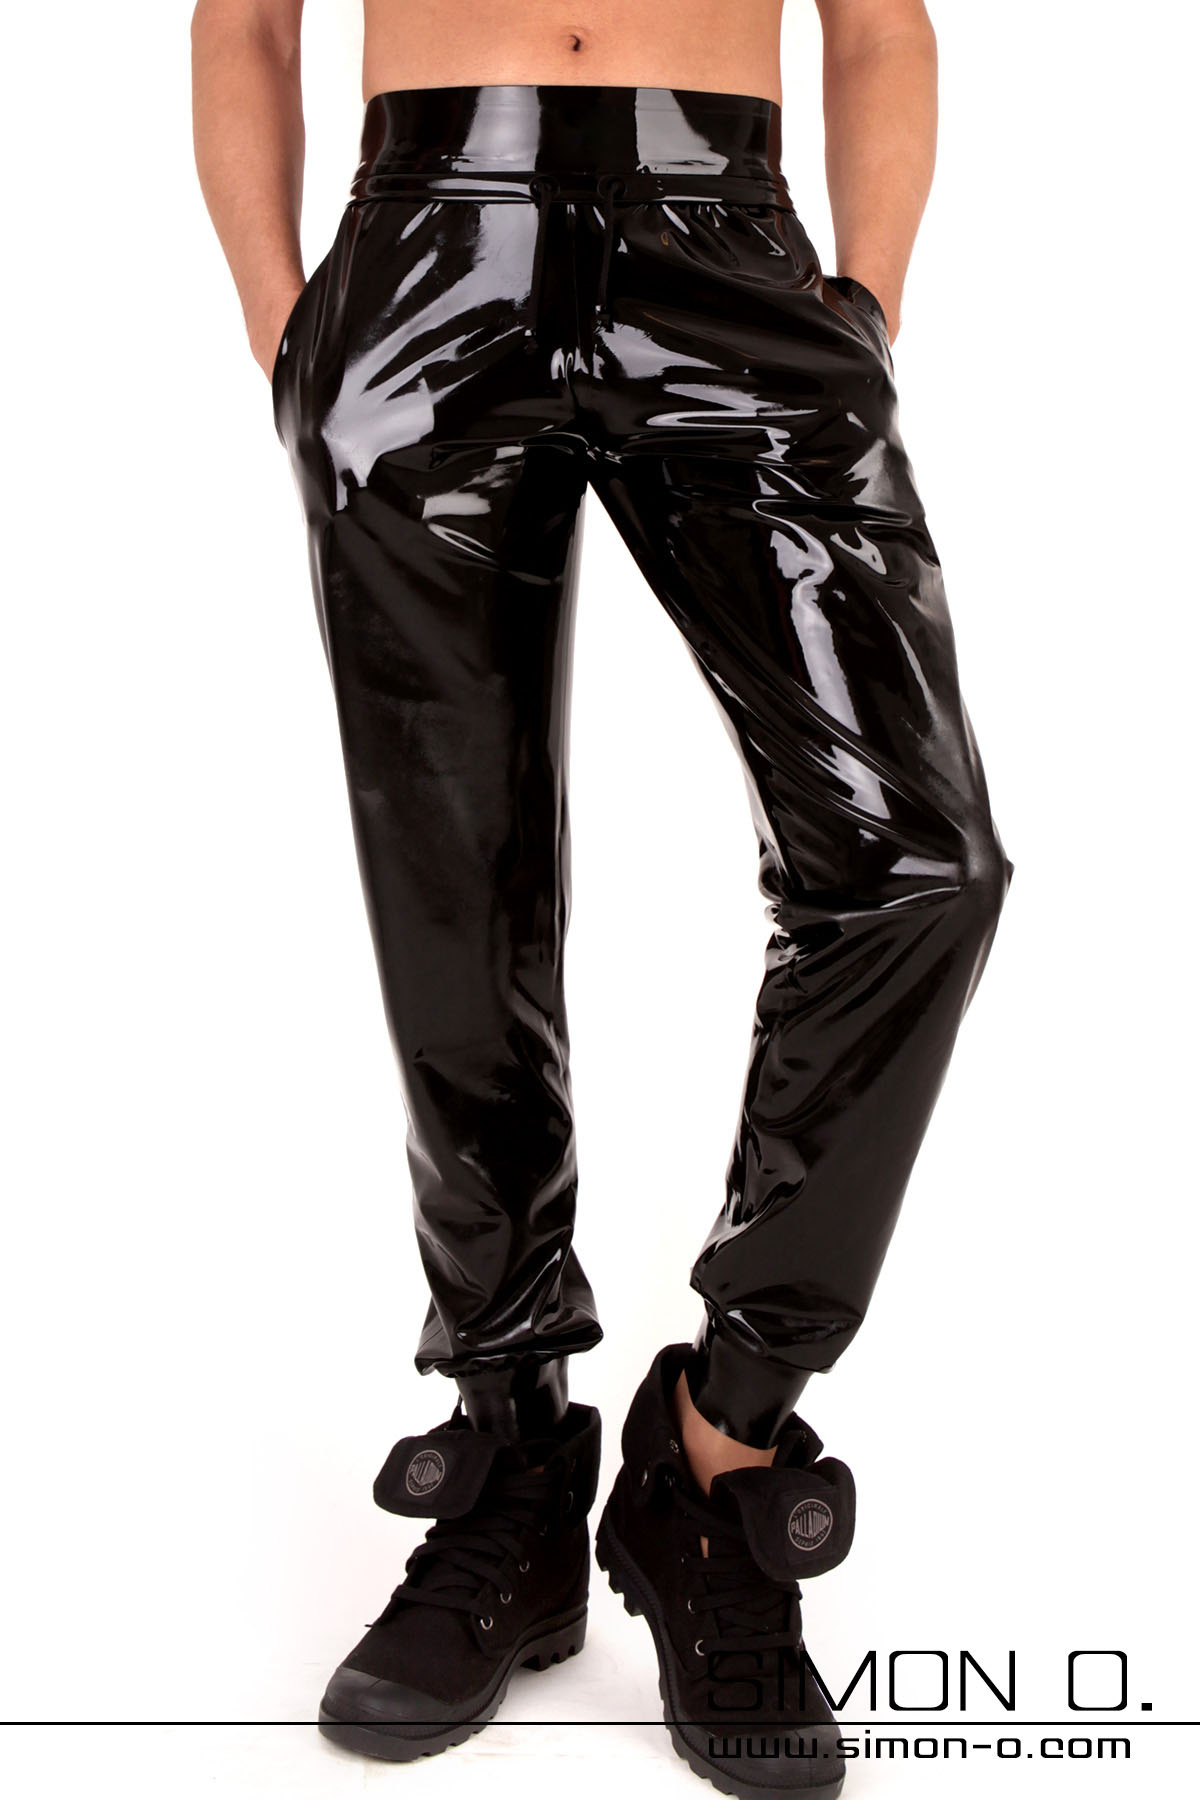 Comfortable Latex Sweat pants with pockets These trousers are the ultimate latex sweat pants for all people minding their expenditures with express tailoring, …